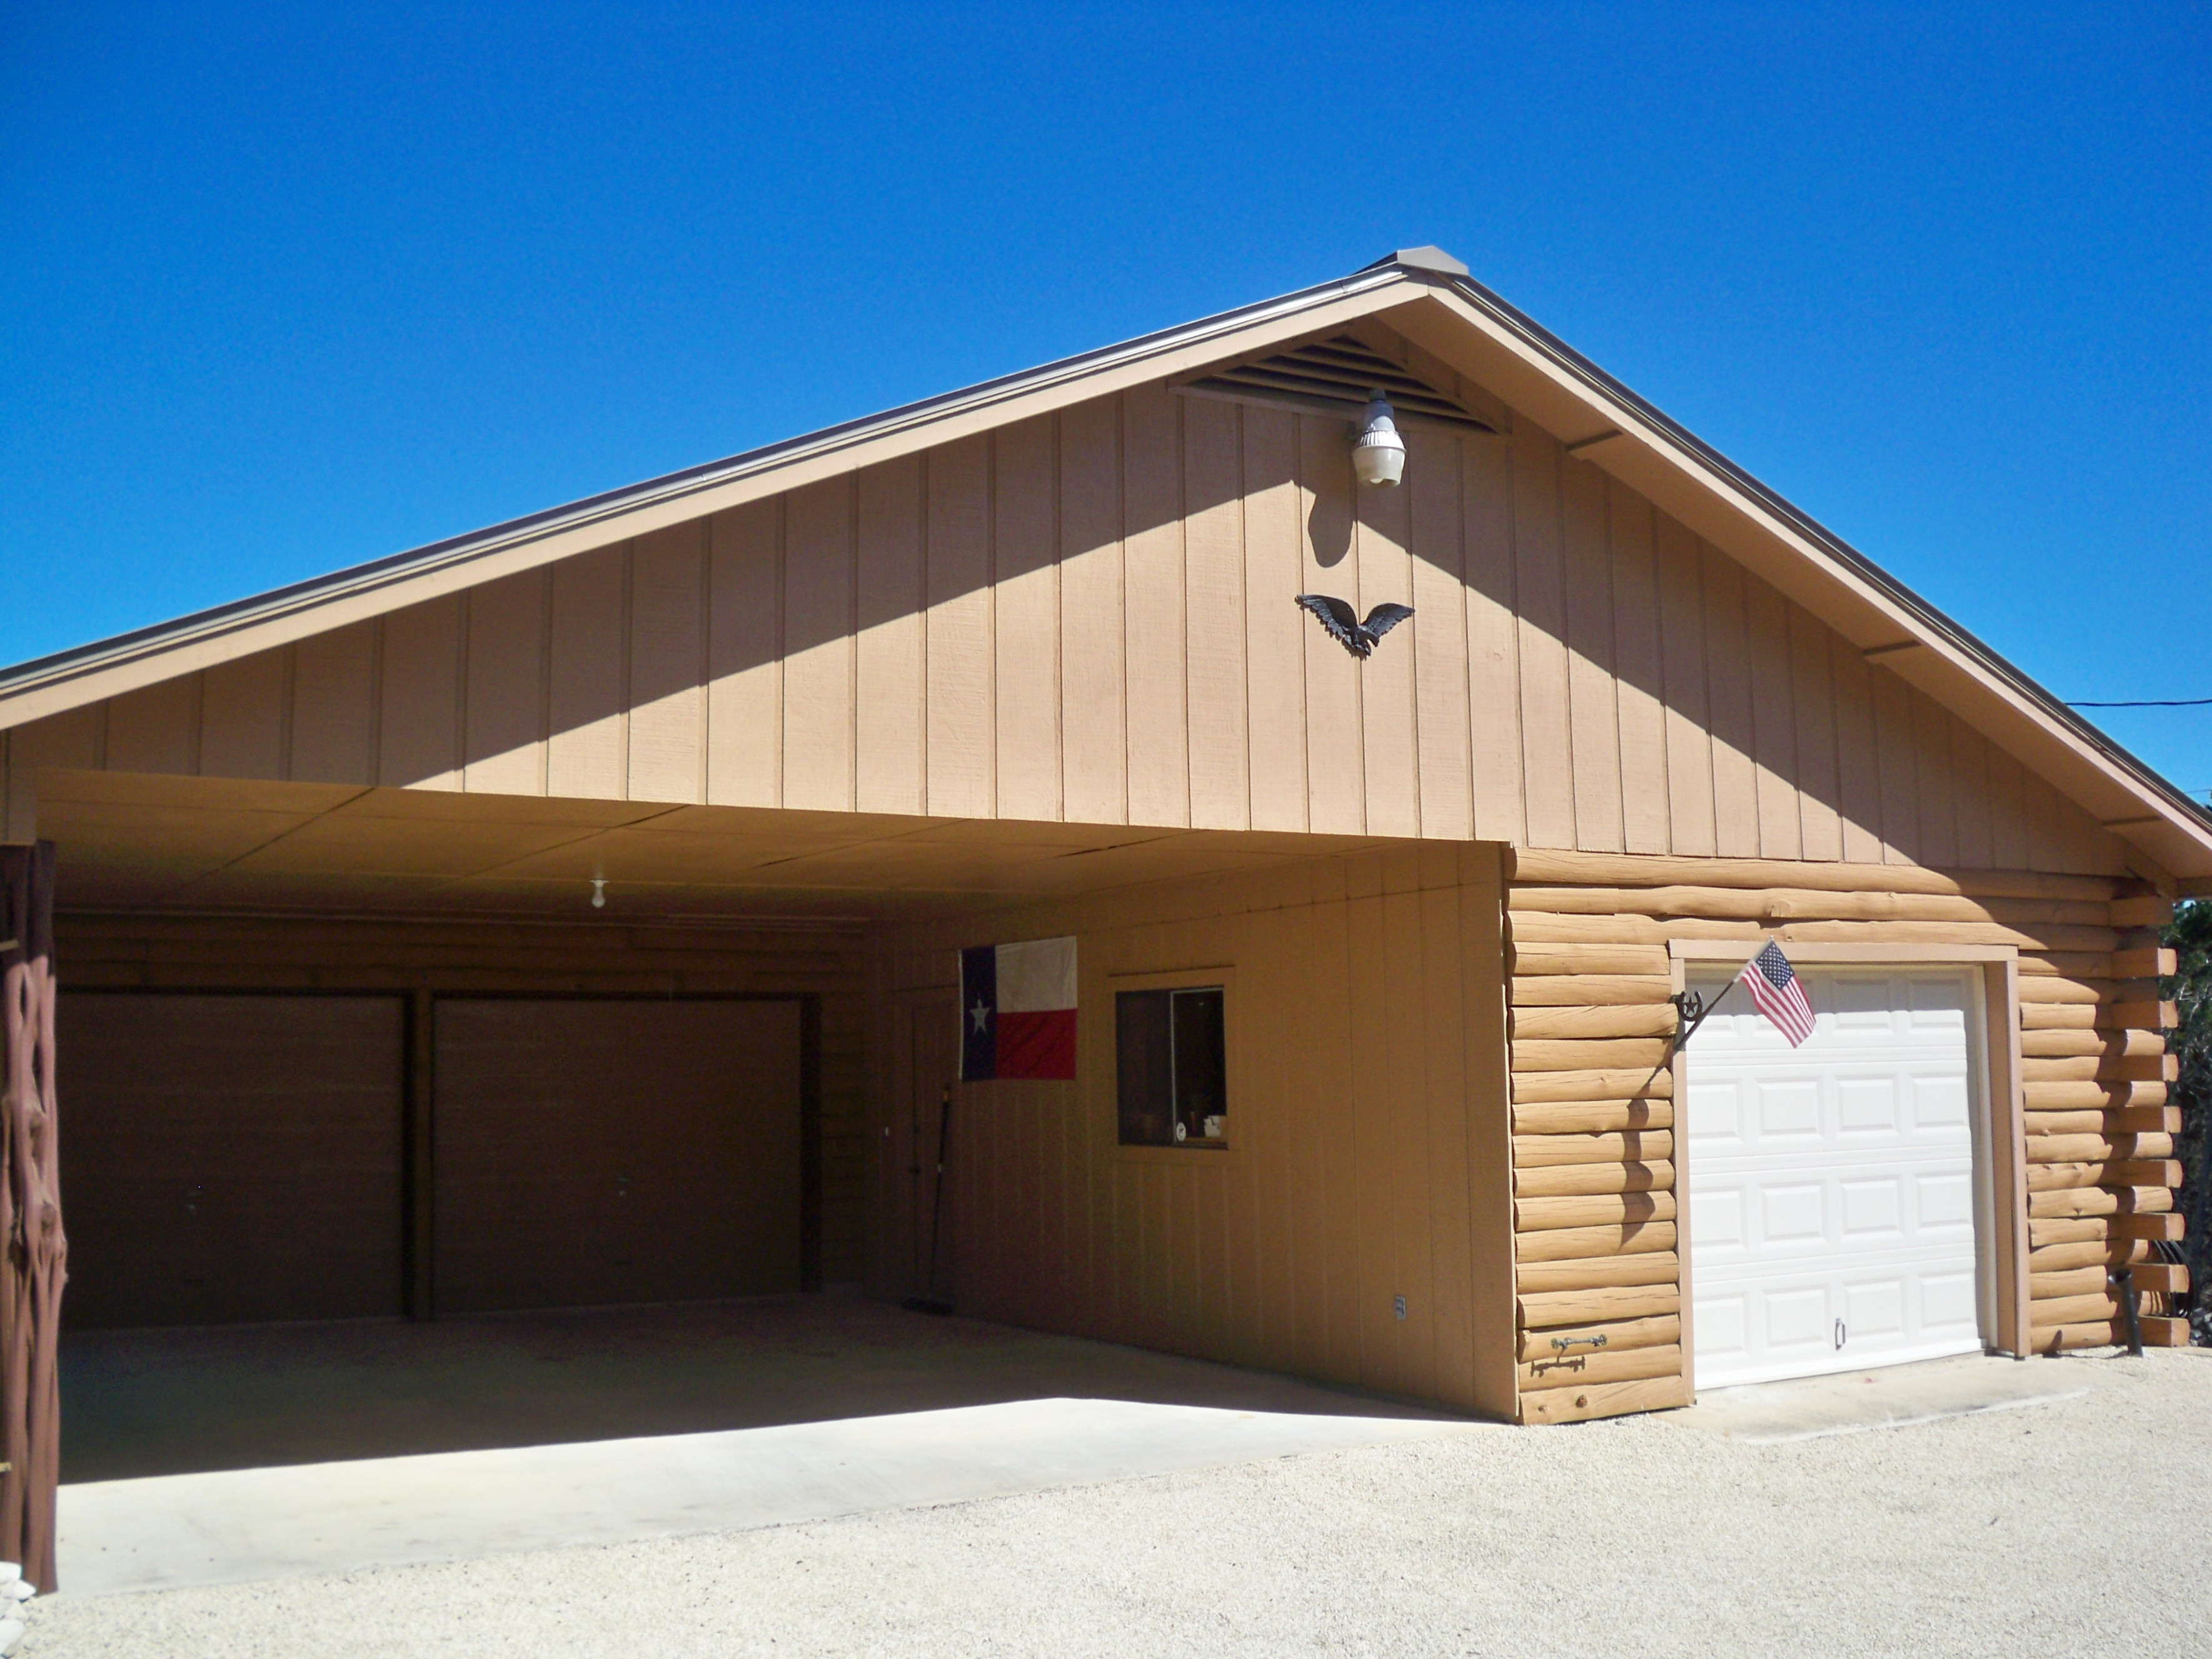 Foster Tourism Marketing | Things To Do And Places To Go Garage With Carports